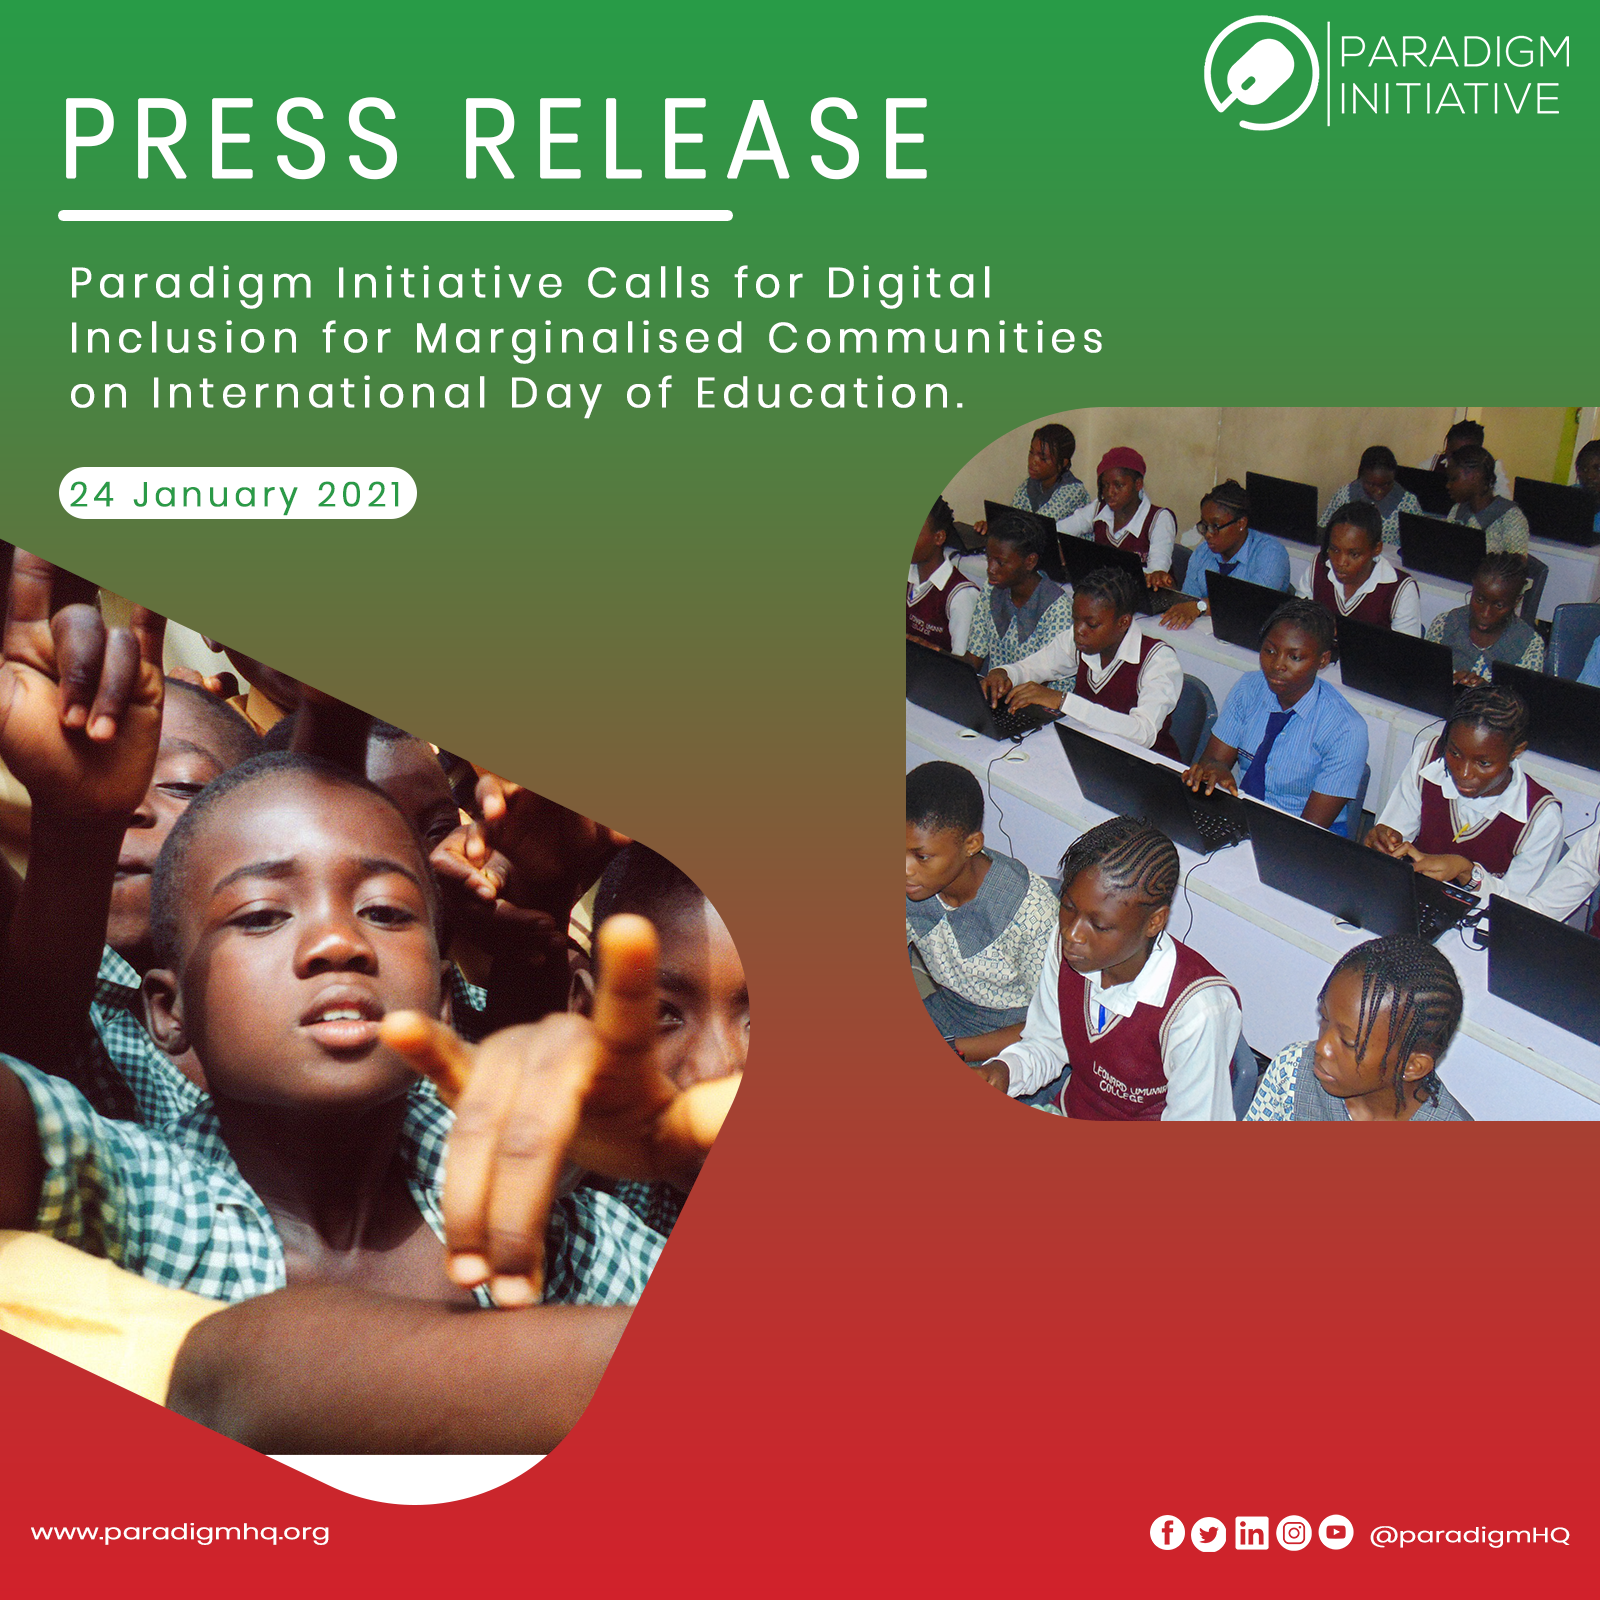 Press Release: Paradigm Initiative Calls for Digital Inclusion for Marginalised Communities on International Day of Education!